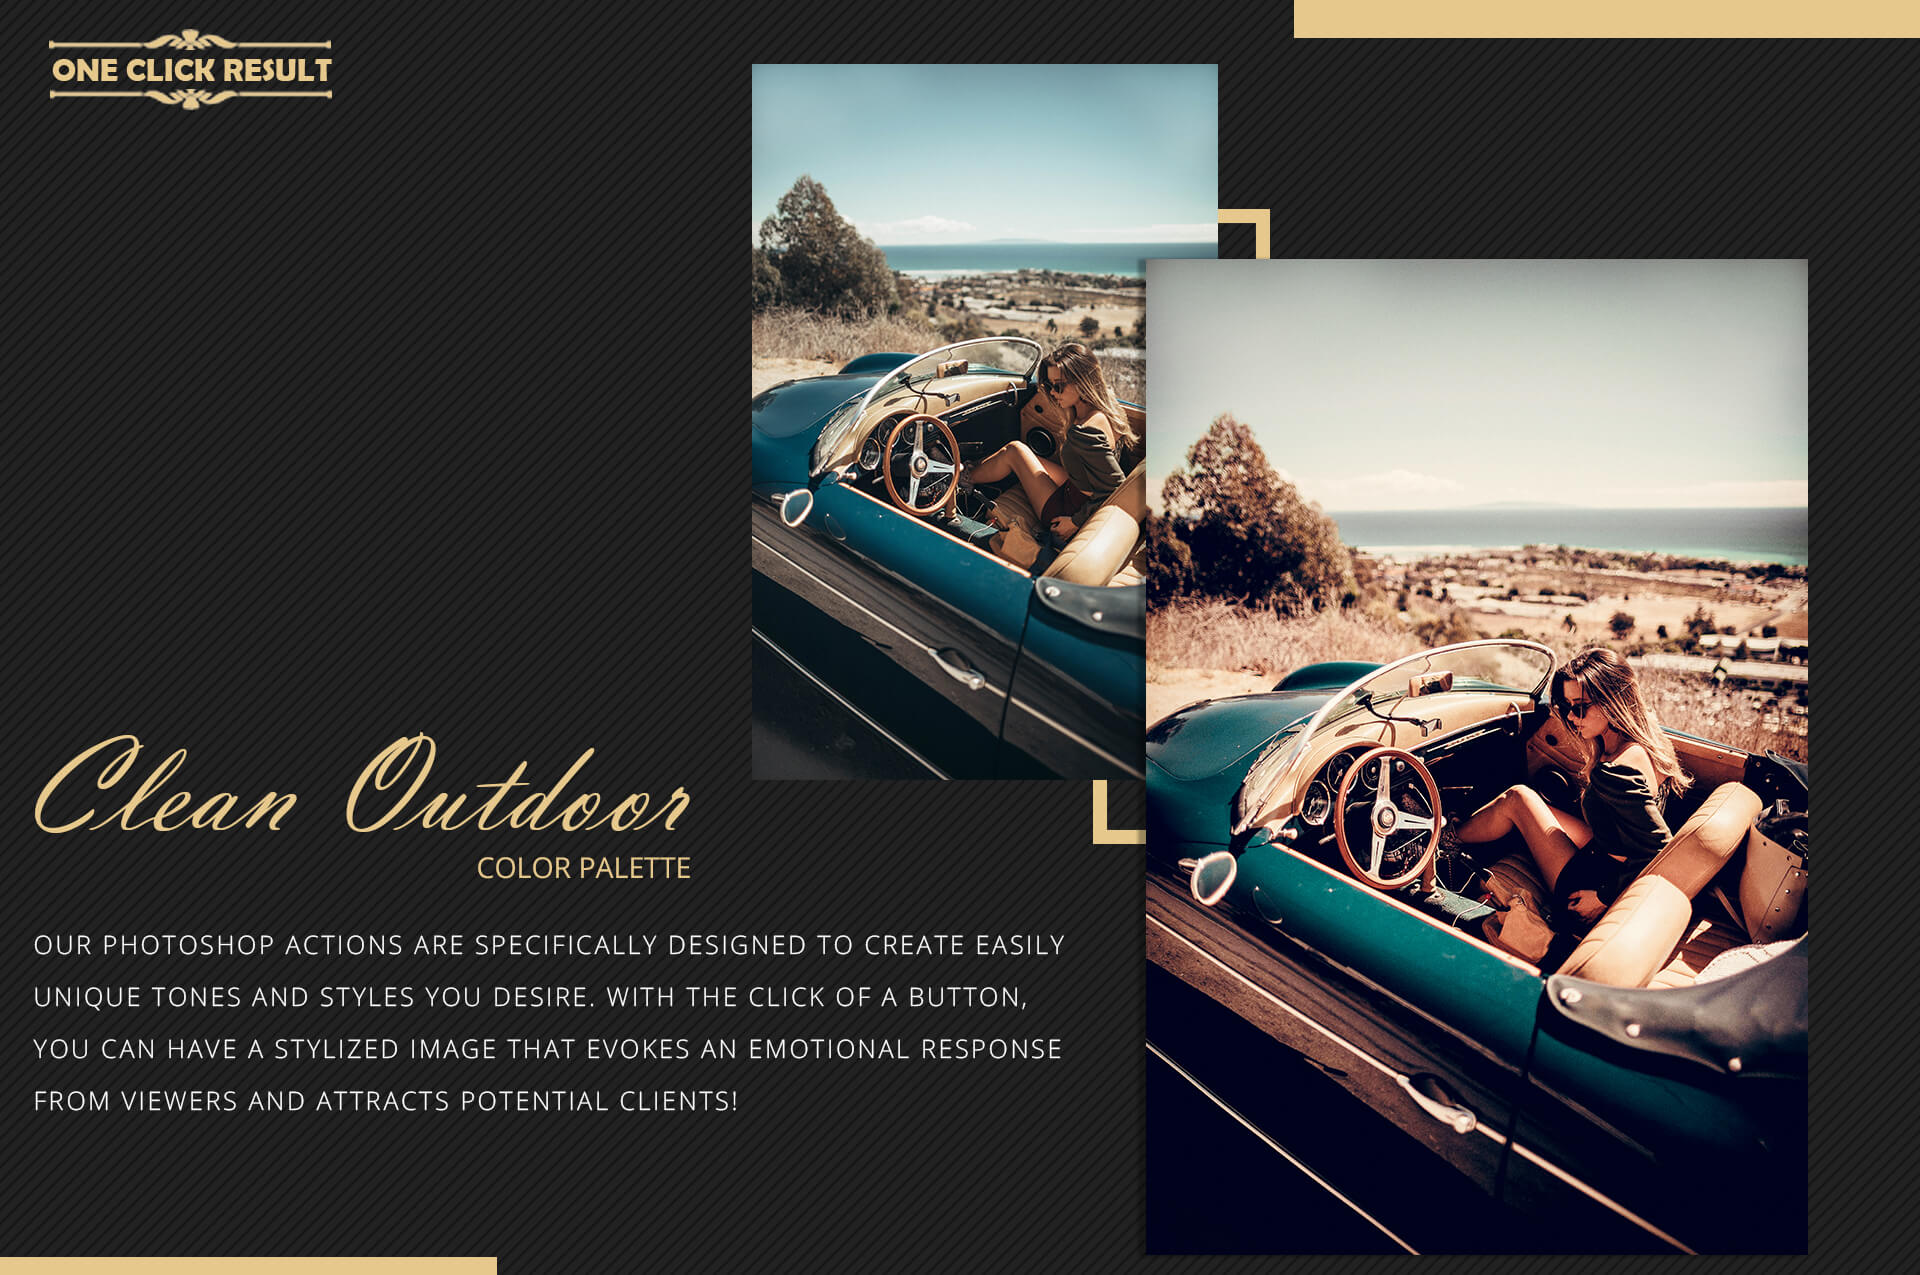 Neo Clean Outdoor Color grading Photoshop Actions example image 8